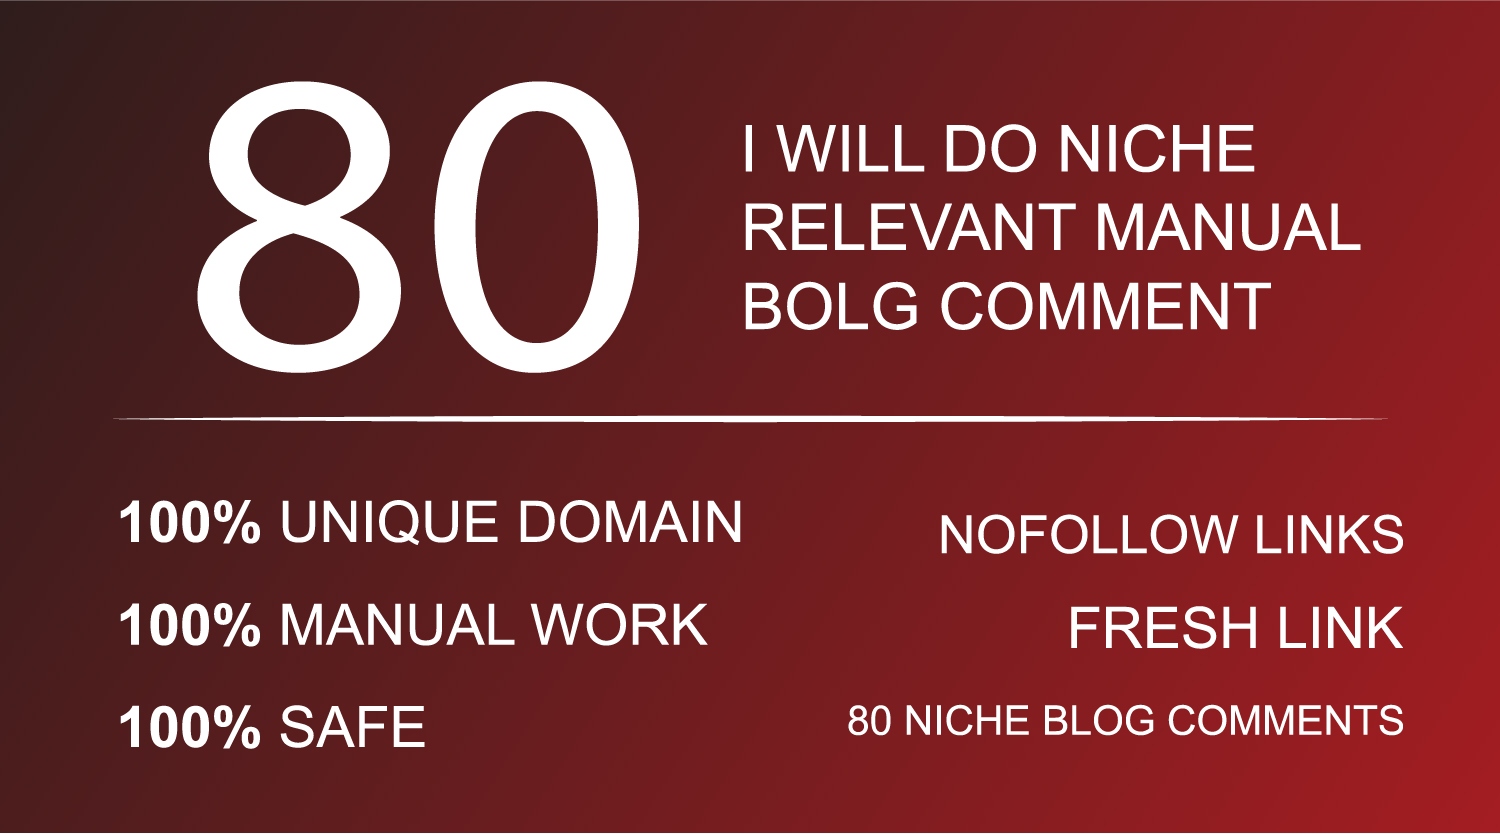 80 Niche Relevant Blog Comments Manual